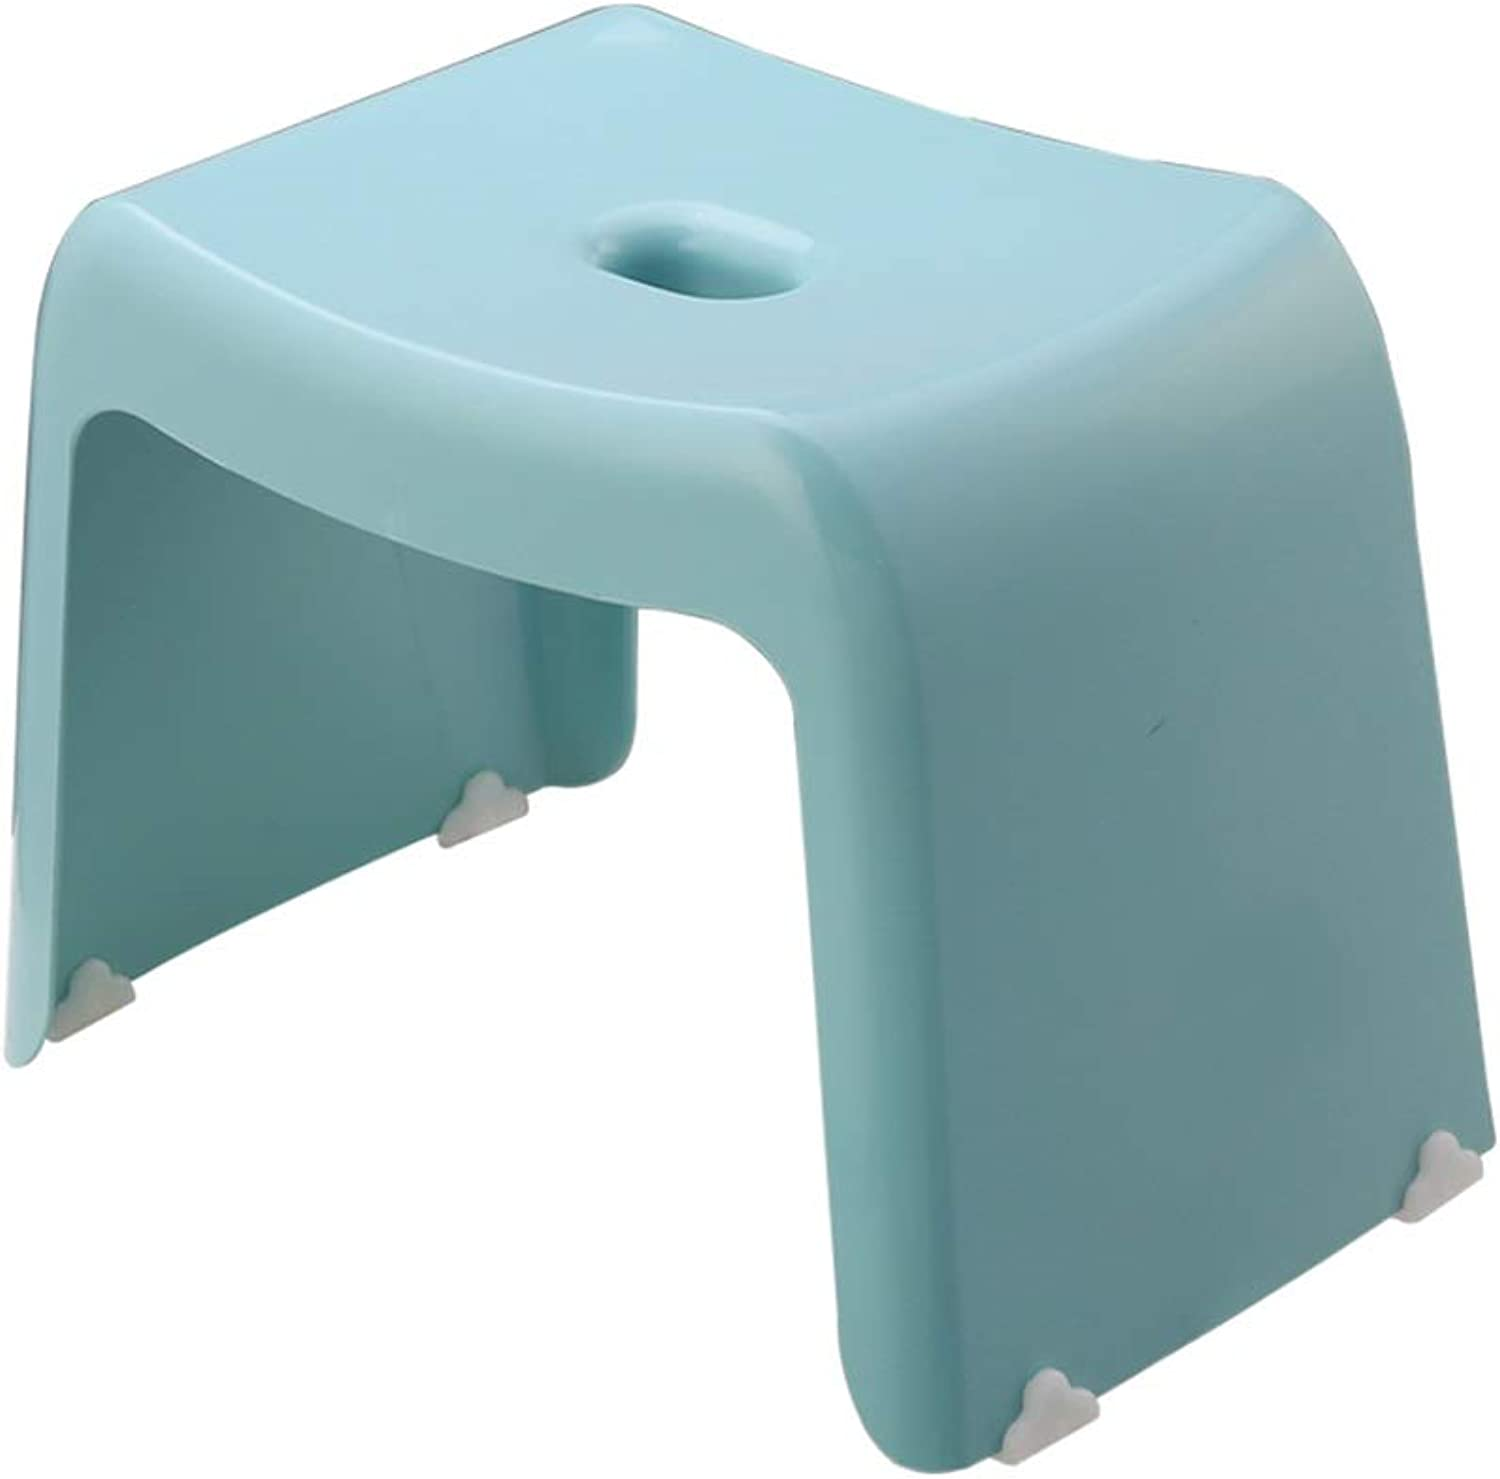 Plastic Stack Stool, Sturdy Comfortable Small Stool Change shoes Bench Bath Stool Old Man Stool Antislip Stool Easy To Store Stool (color   bluee, Size   37.5  24.5  26.5CM)